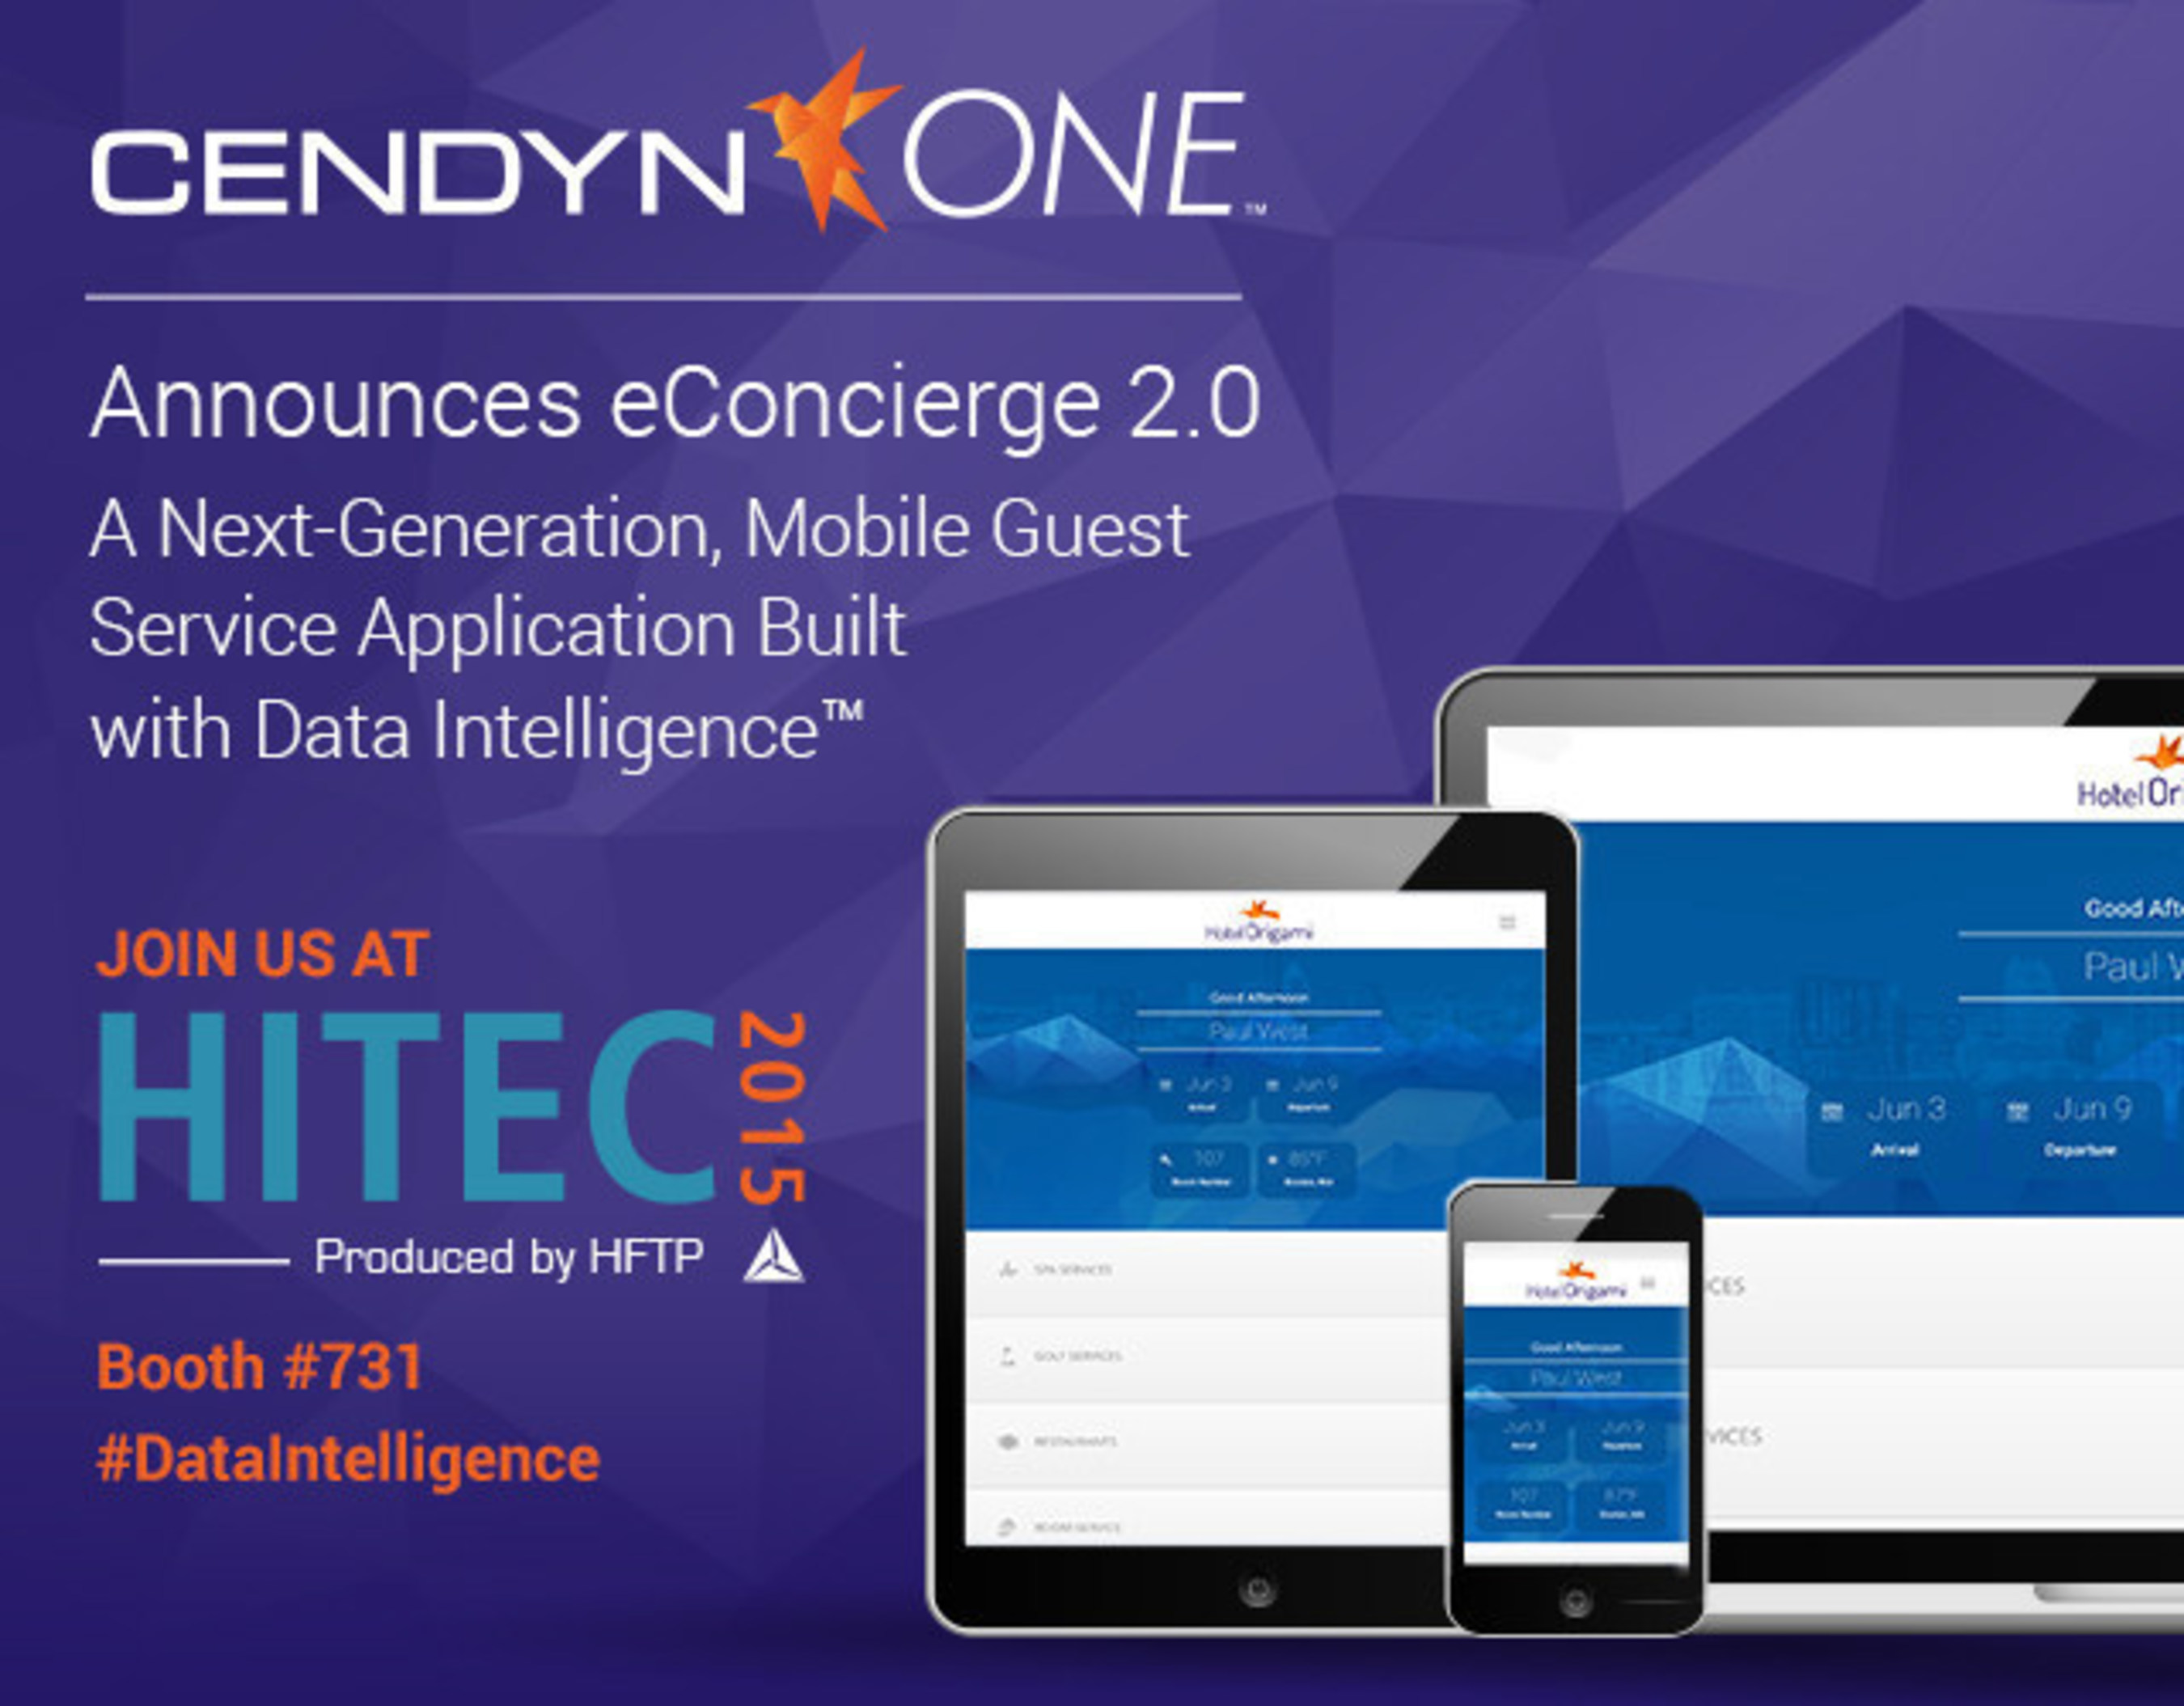 Cendyn/ONE Announces eConcierge 2.0 -- a Next-Generation, Mobile Guest Service Application built with Data Intelligence''